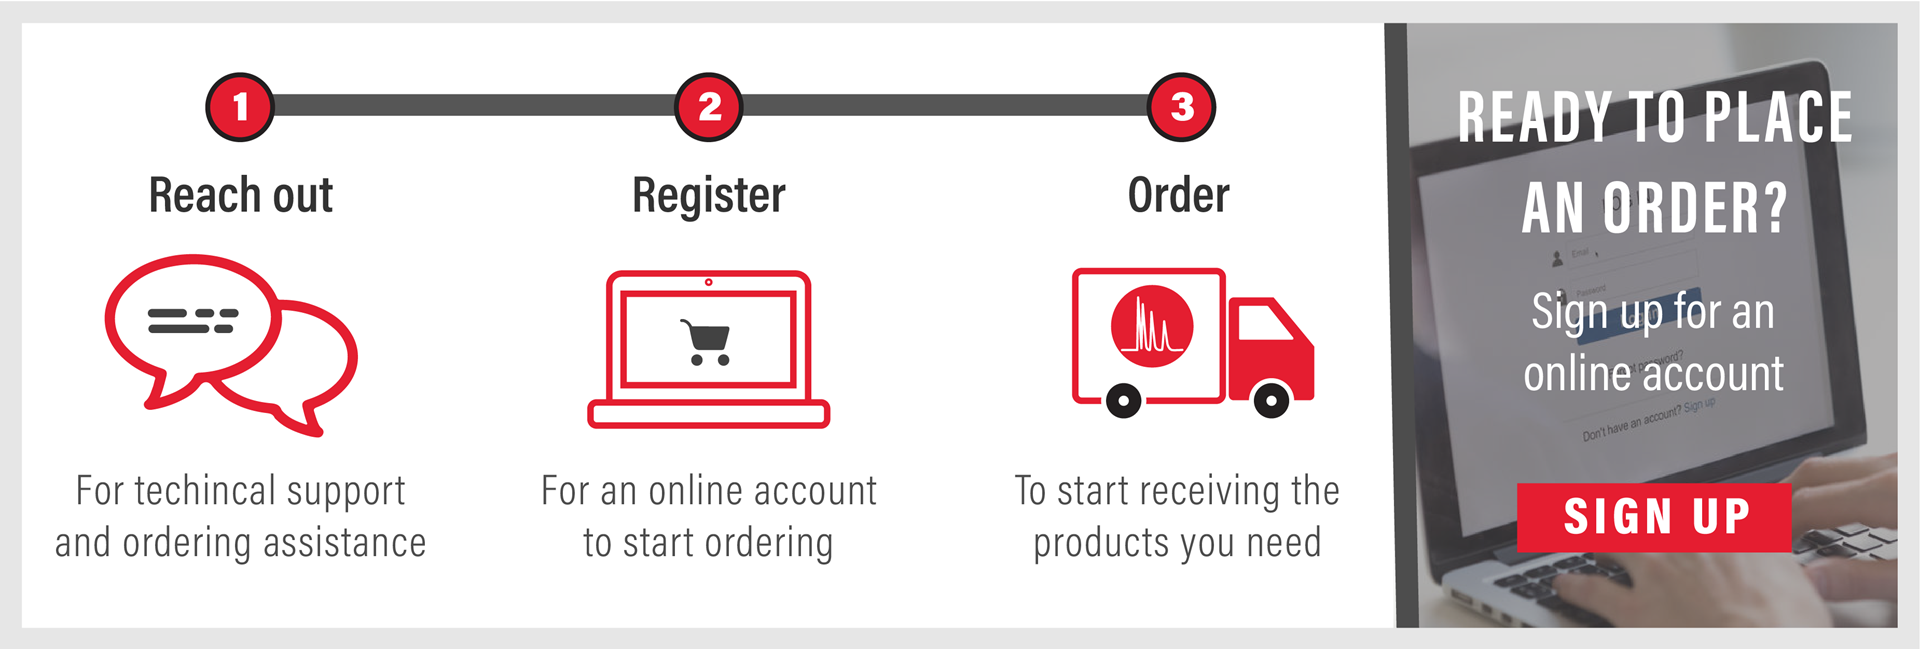 How to order from Chrom Tech